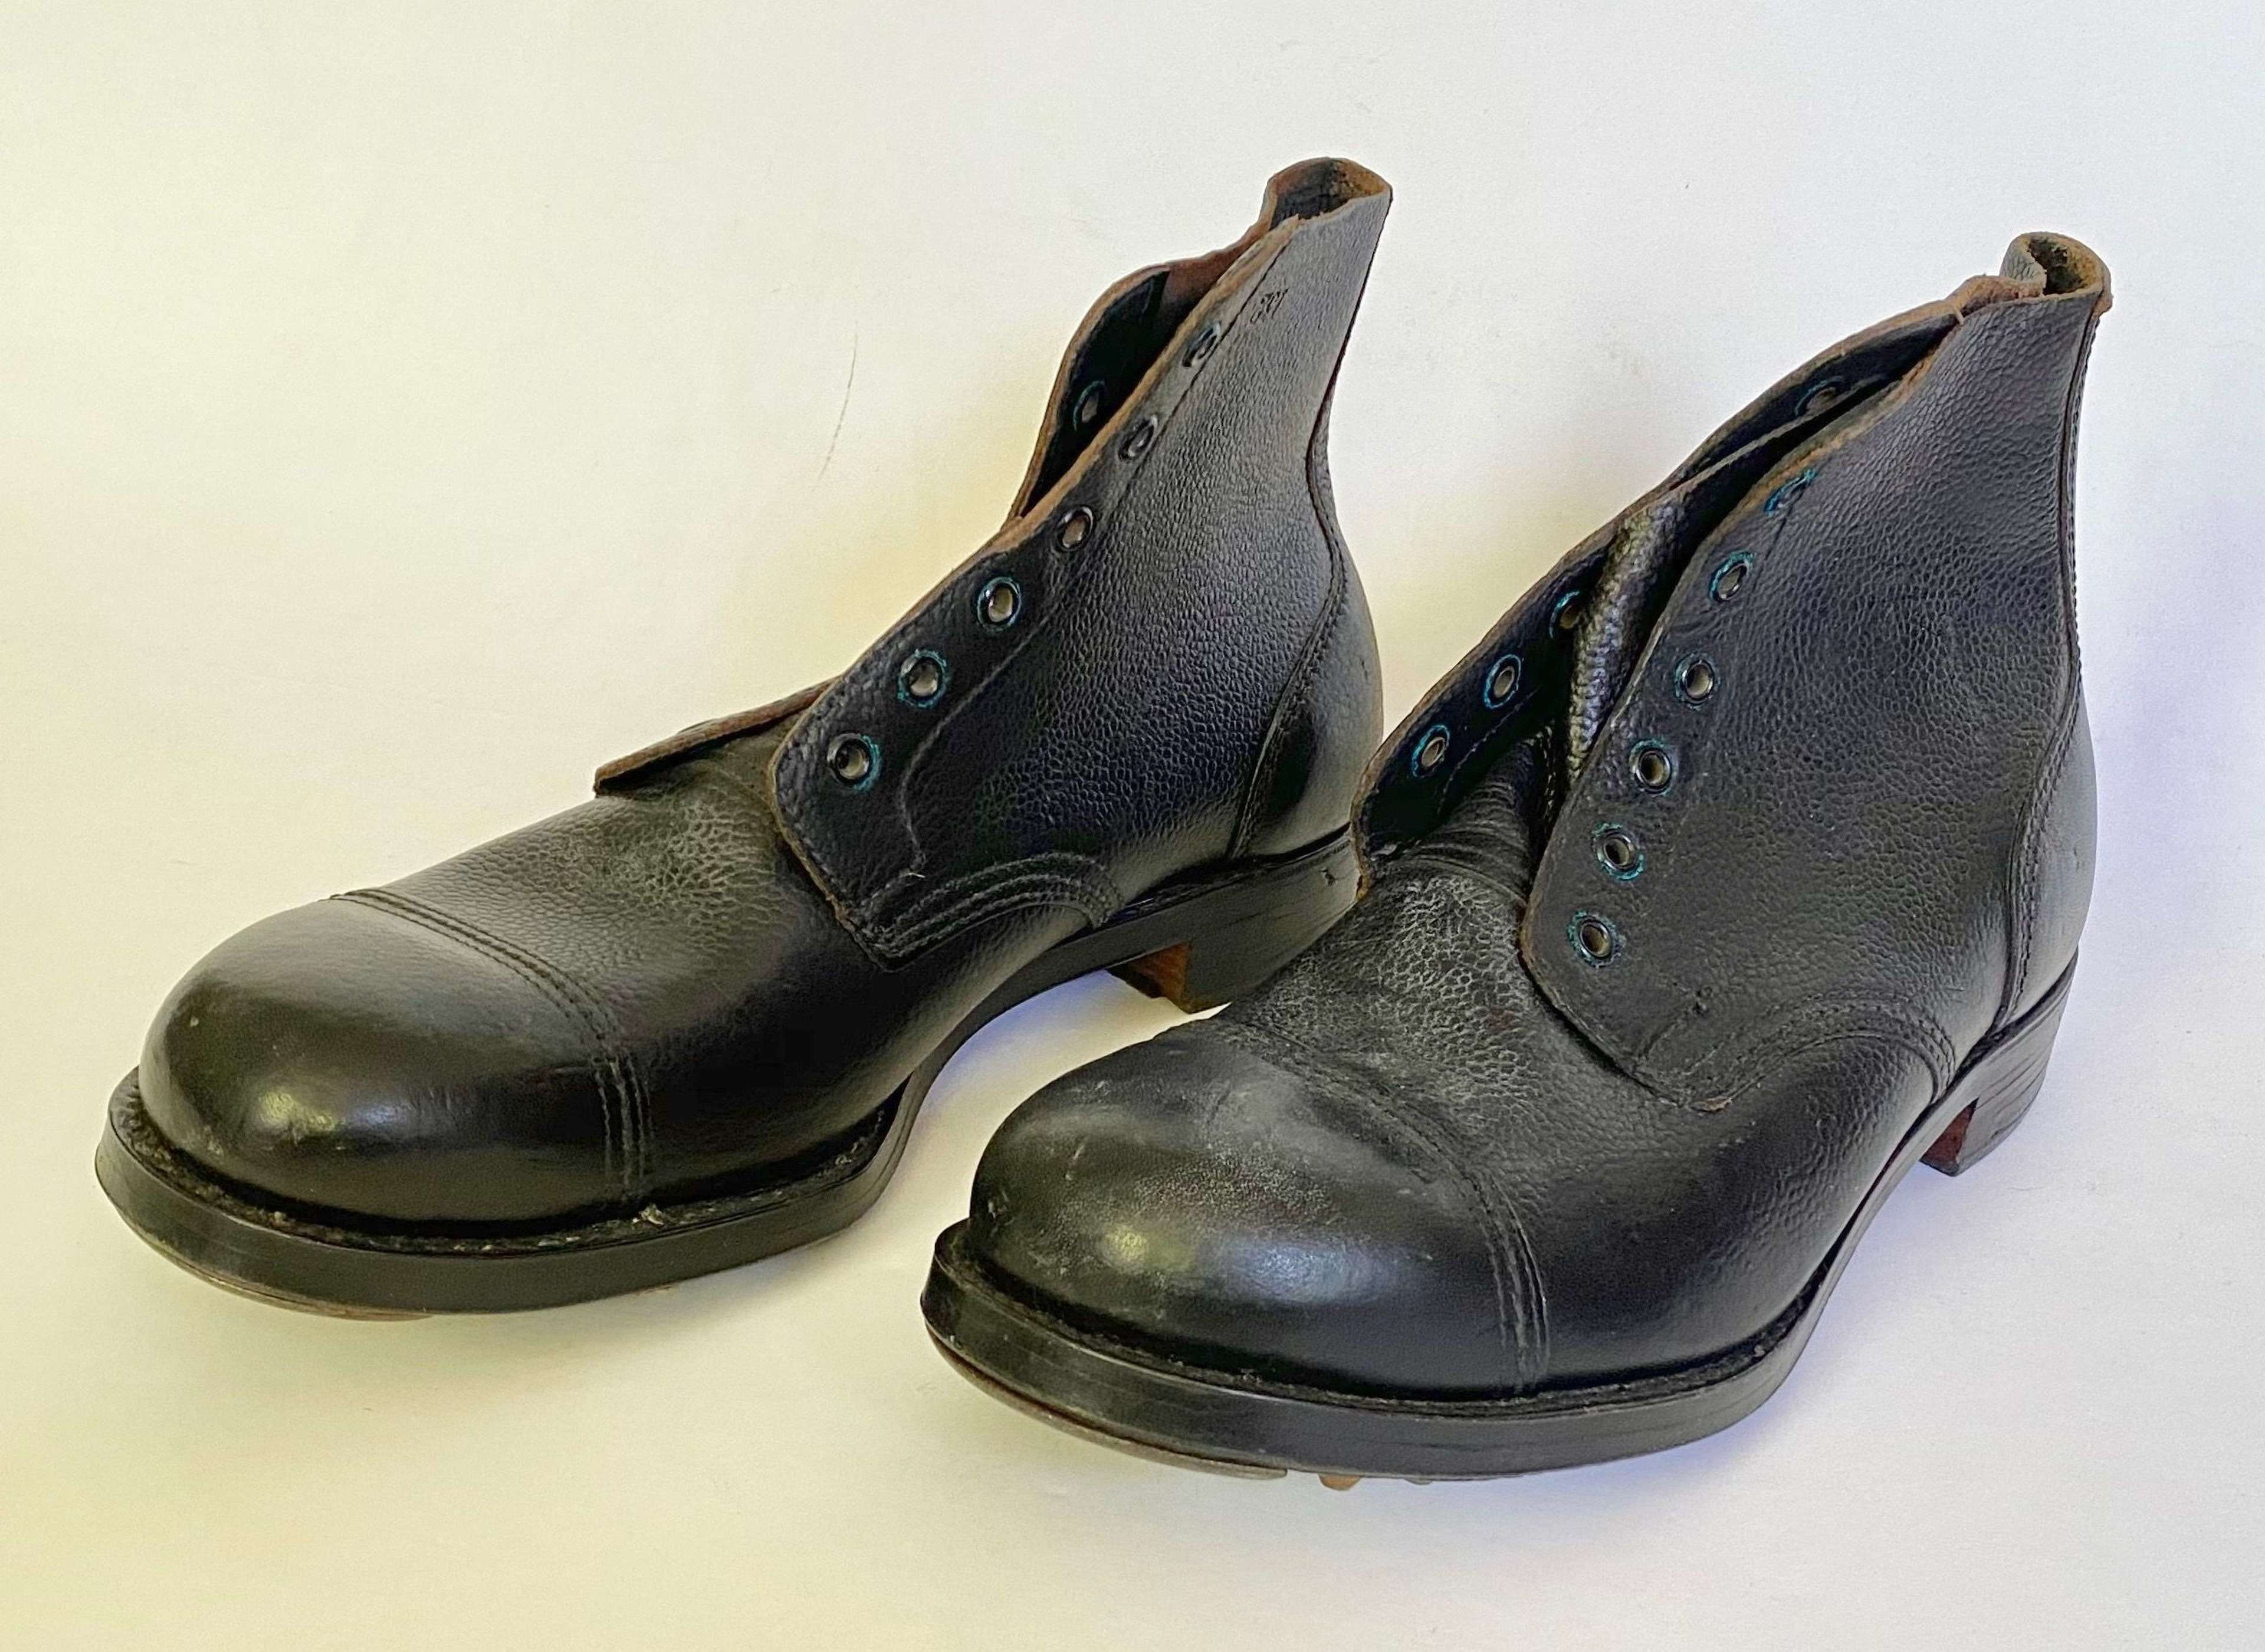 W2 1945 British Army Issue Ammo Boots Size 9.